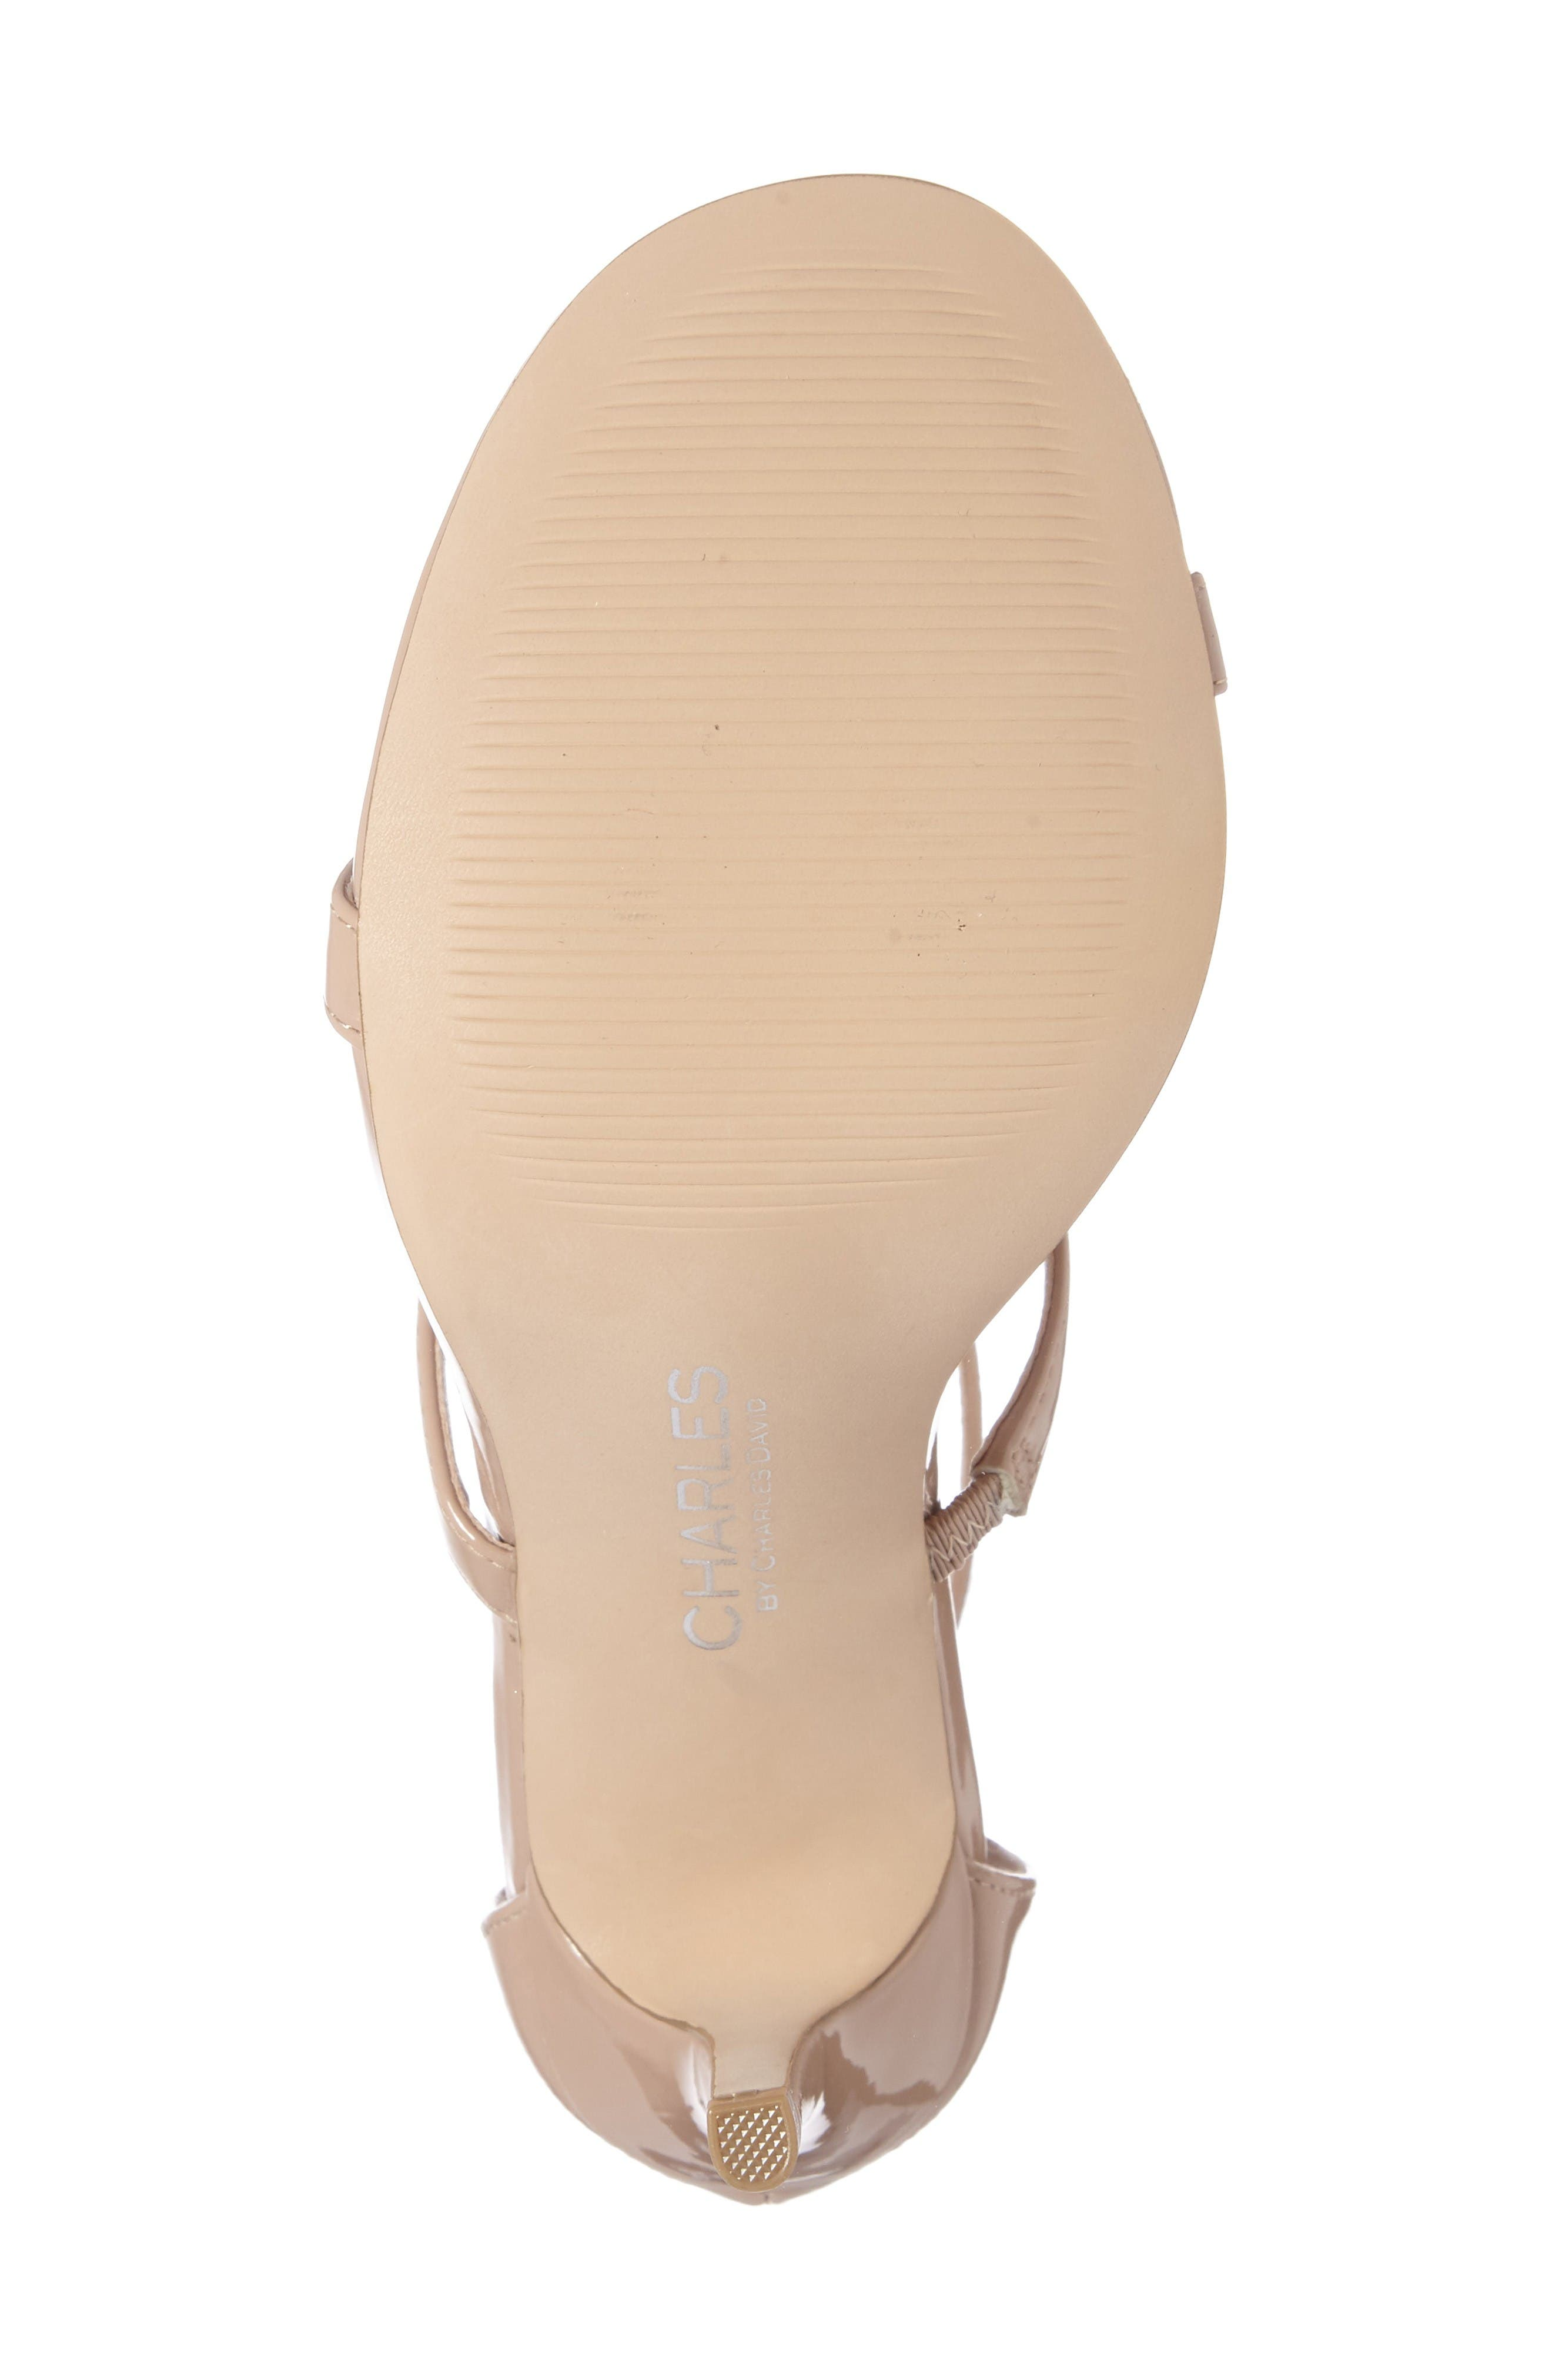 Ria Strappy Sandal,                             Alternate thumbnail 4, color,                             Nude Patent Leather